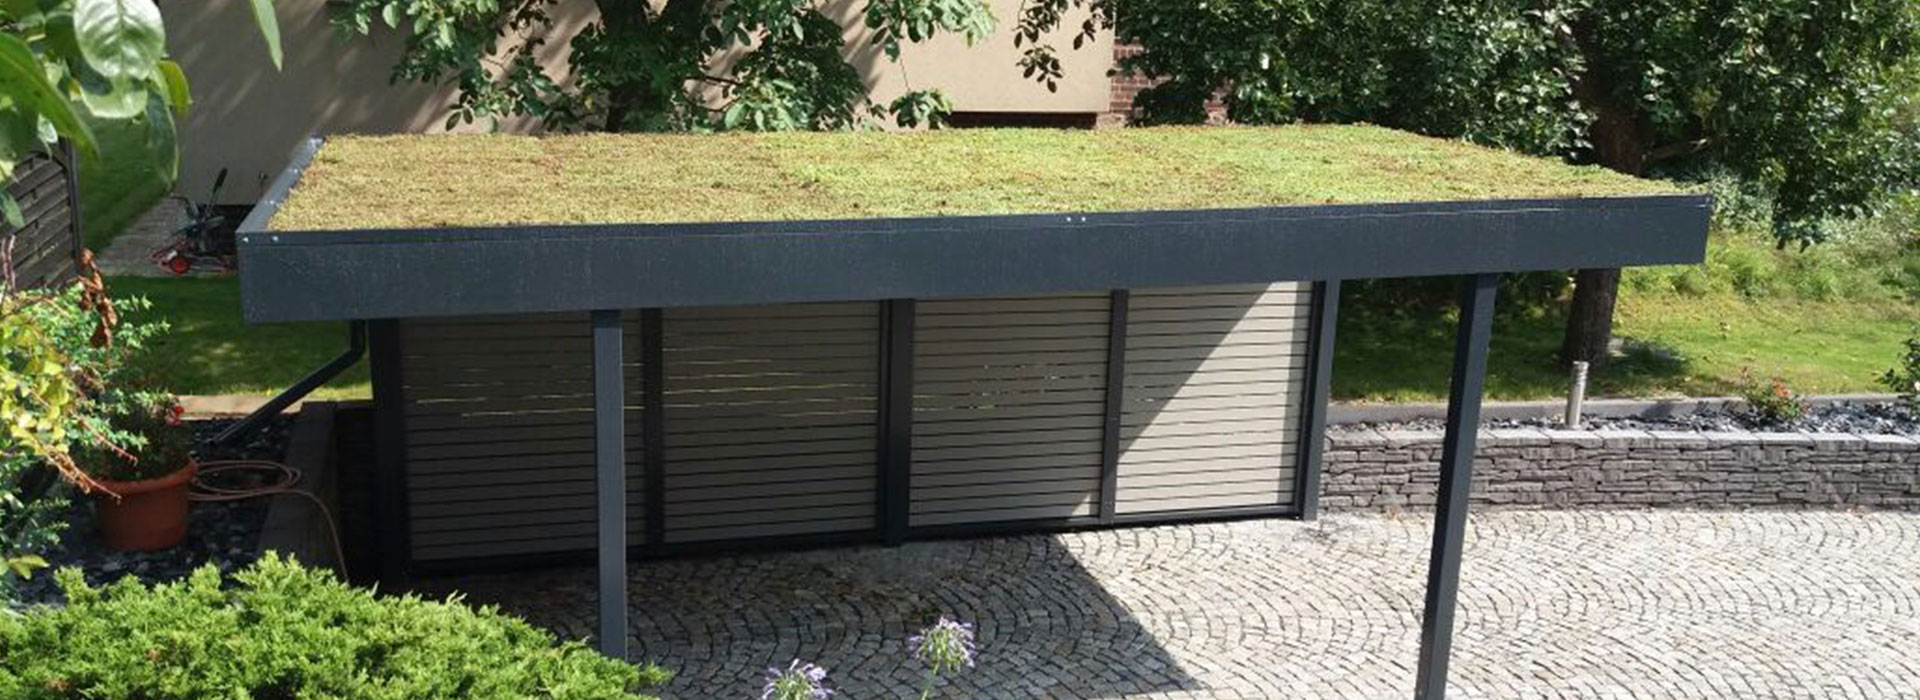 carport bauen lassen kosten carport bauen lassen kosten weegarden carport bauen lassen kosten. Black Bedroom Furniture Sets. Home Design Ideas